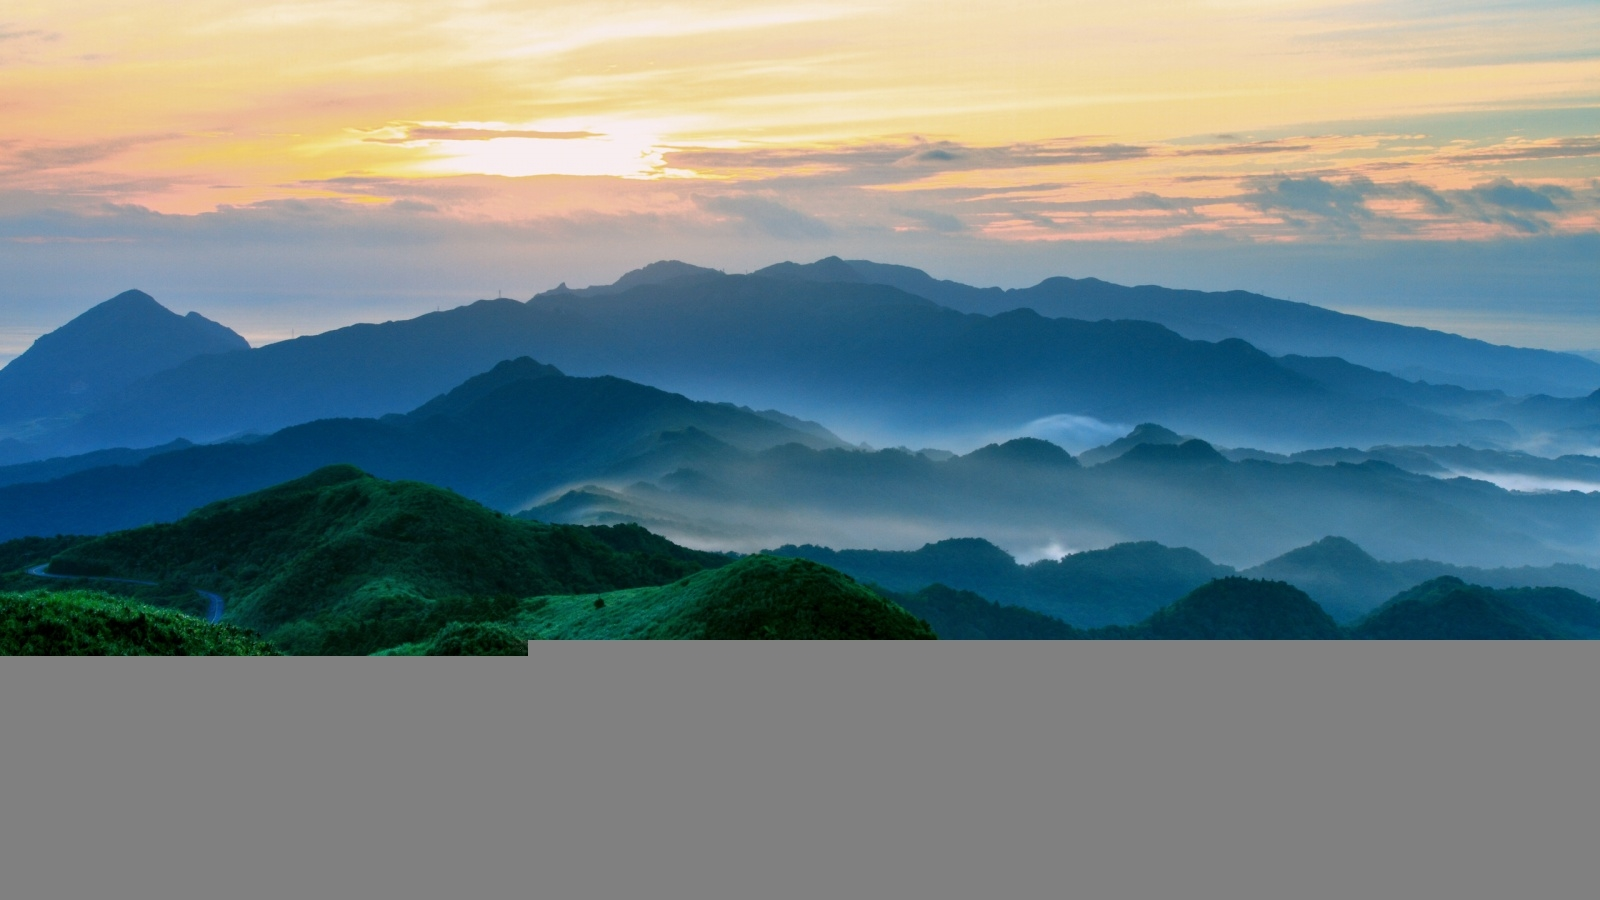 Mountains hd widescreen high res backgrounds images for for Paysage